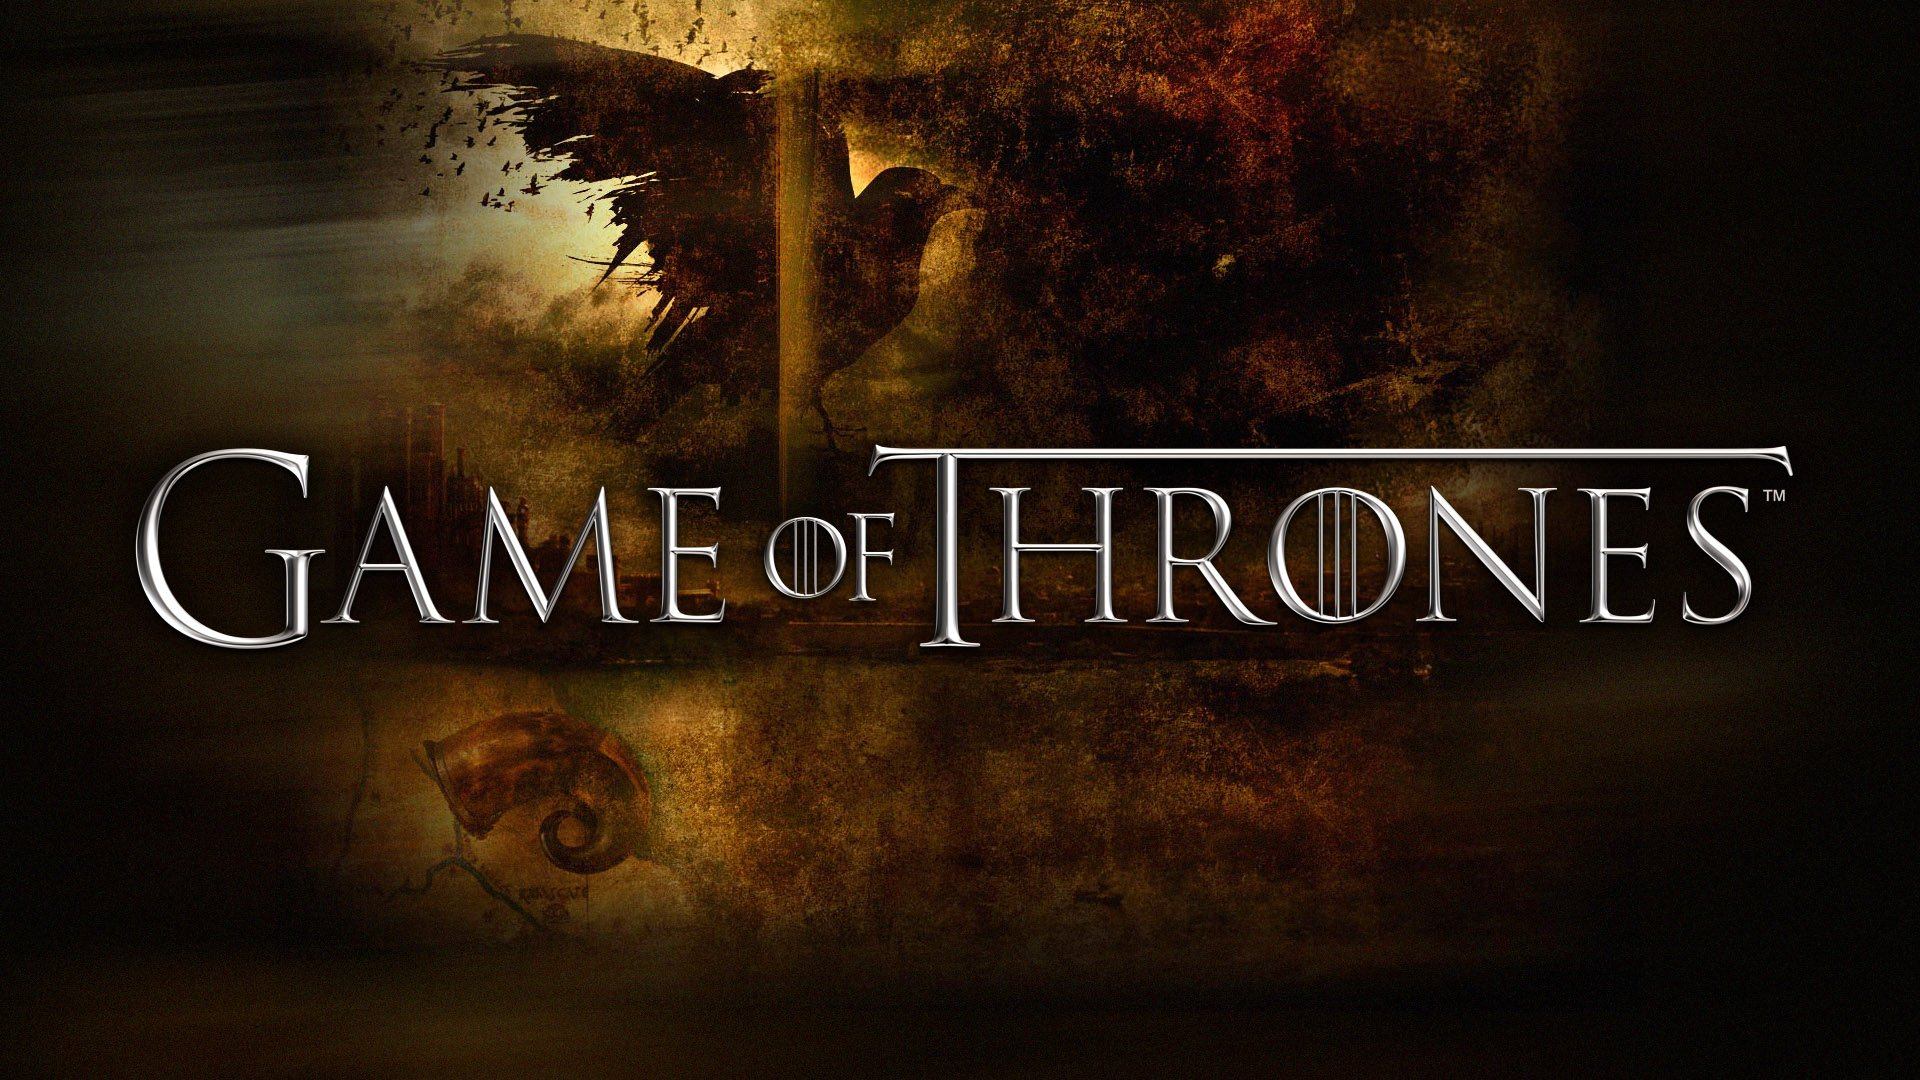 Crow Background Game Of Thrones HBO Series Logo 1920x1080 HD Image TV 1920x1080